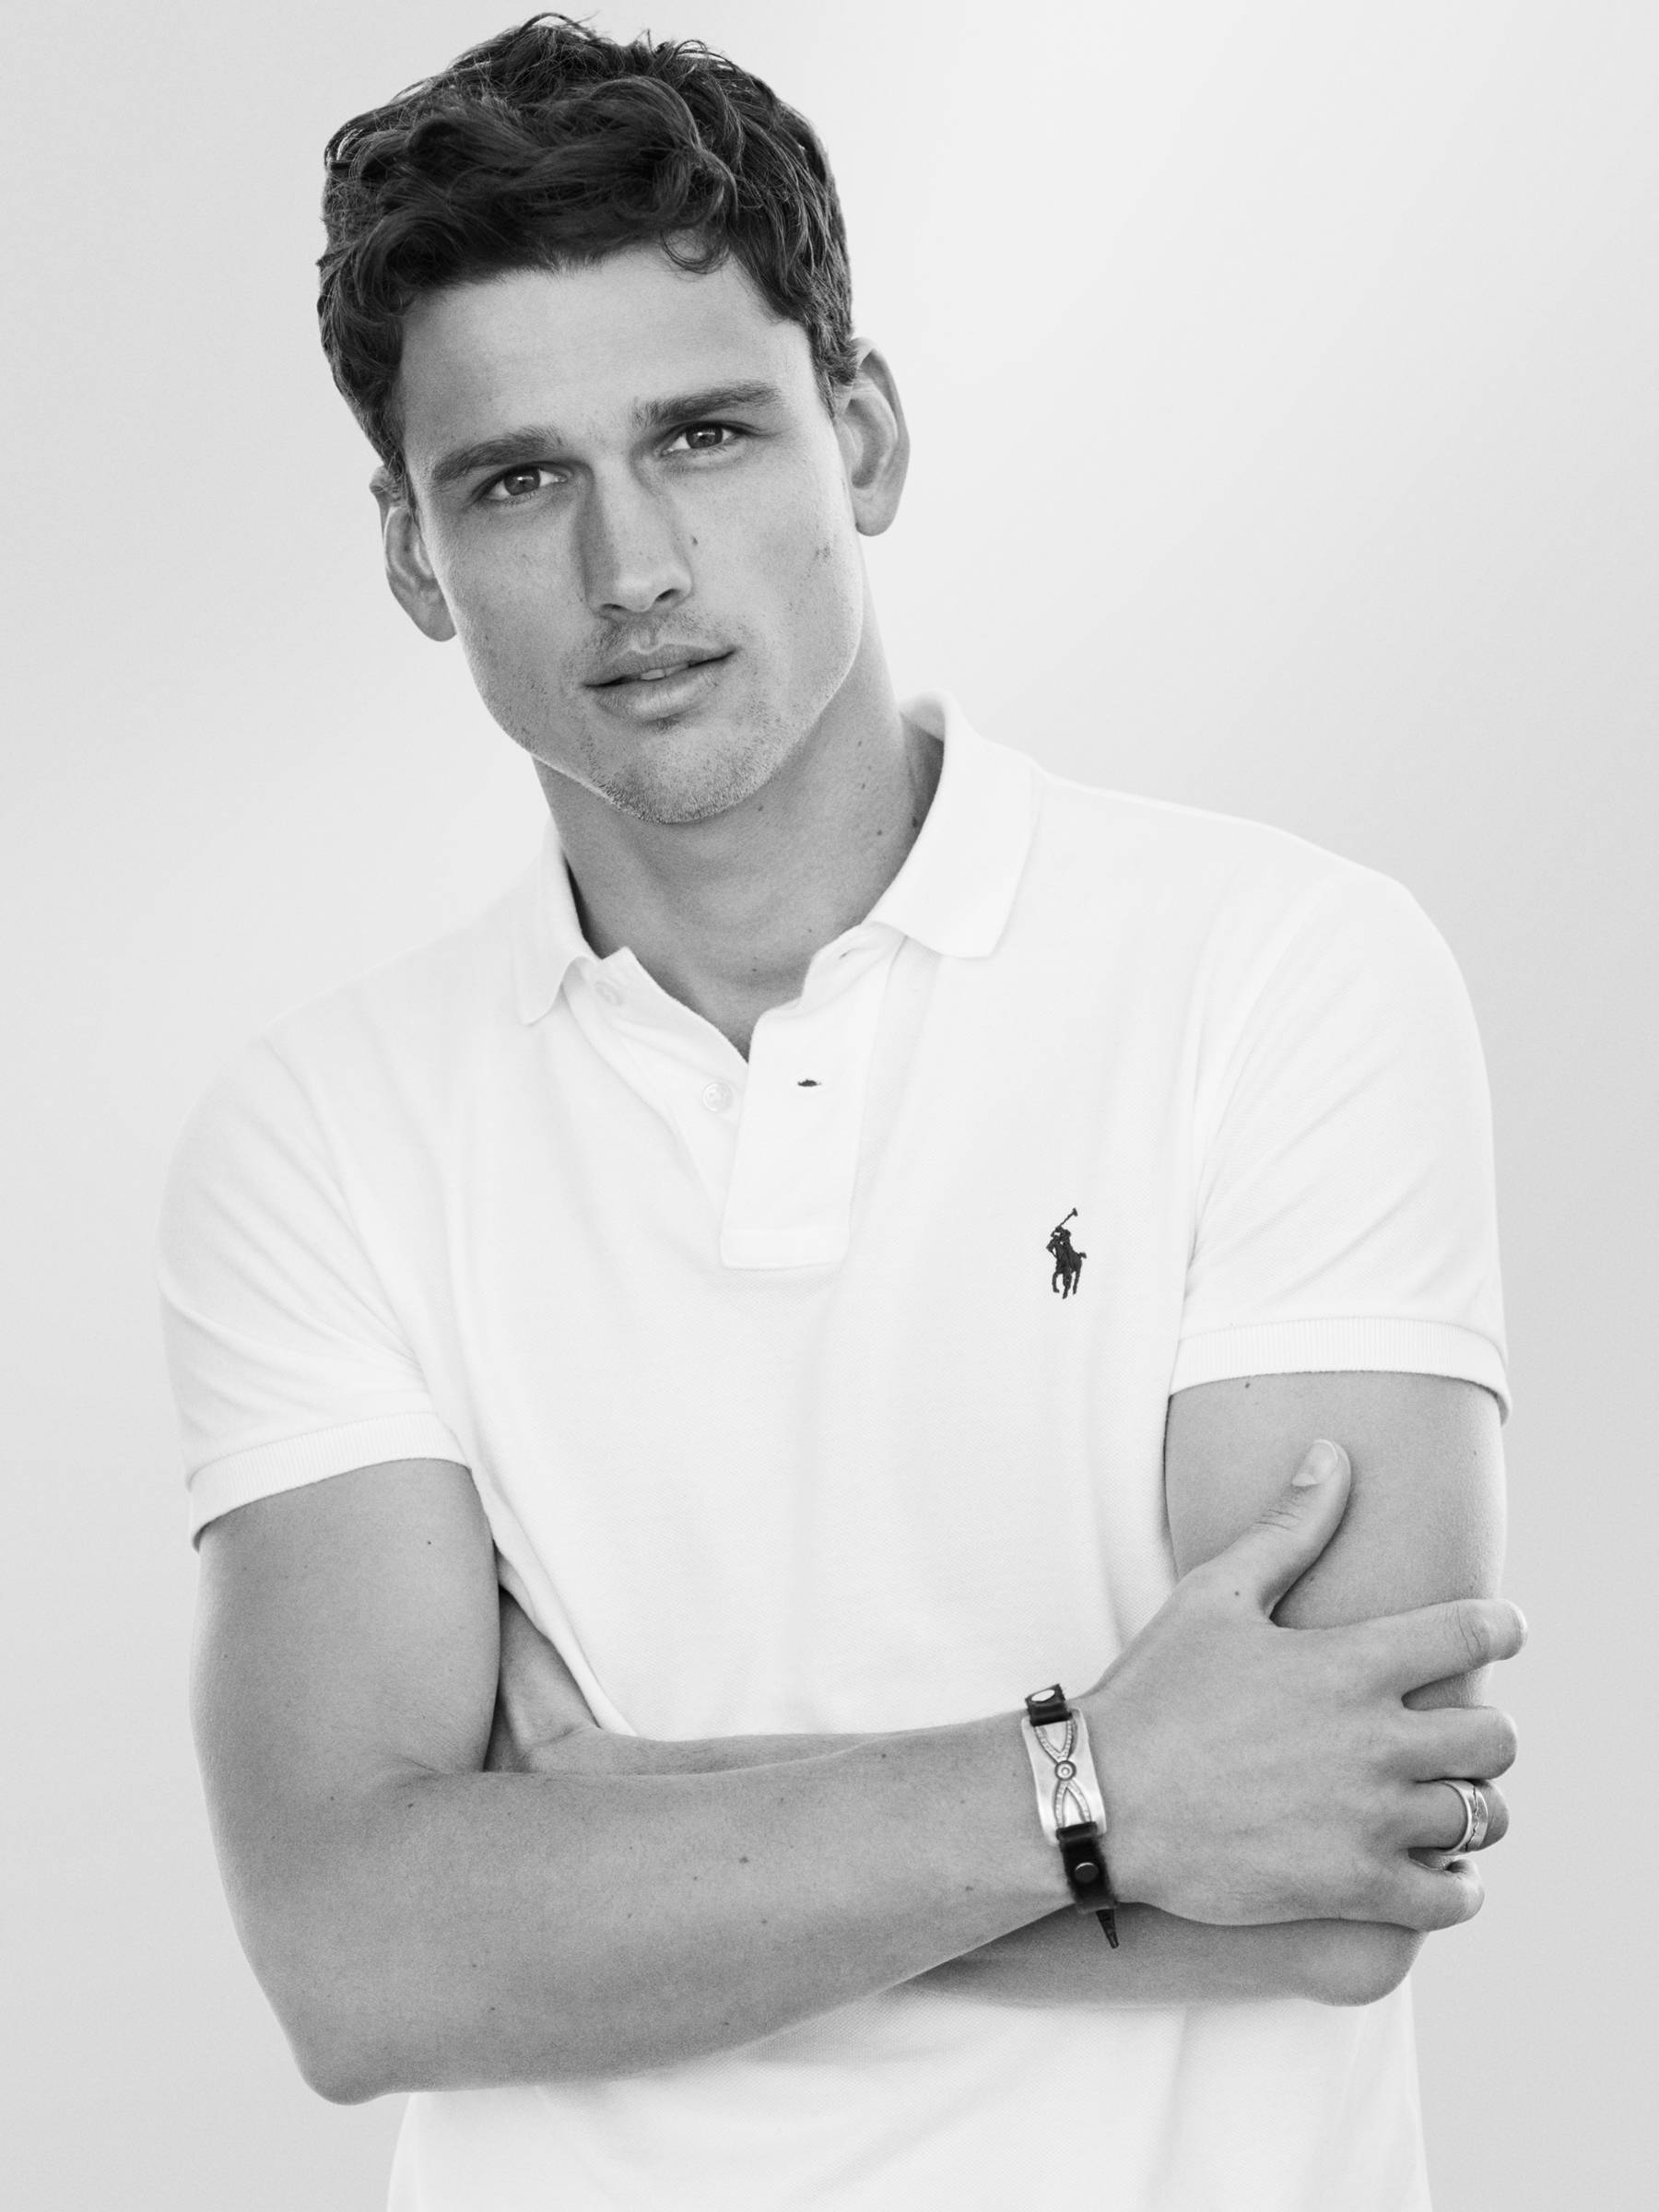 Polo Ralph Lauren male model in white polo